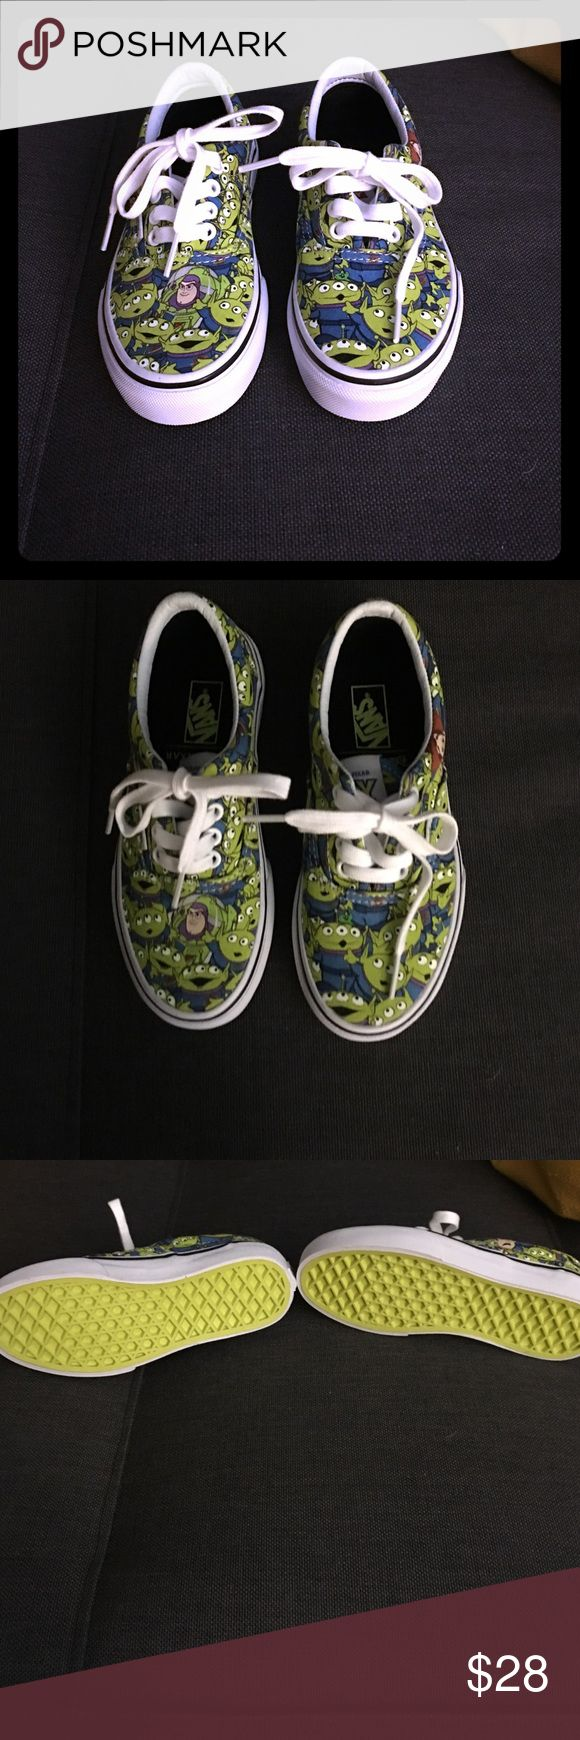 Boys Toy Story Edition Vans size 13. Brand new Toy Story Edition Vans for Boys in a size 13. What a fun sneaker! Aliens actually glow in the dark! Vans Shoes Sneakers